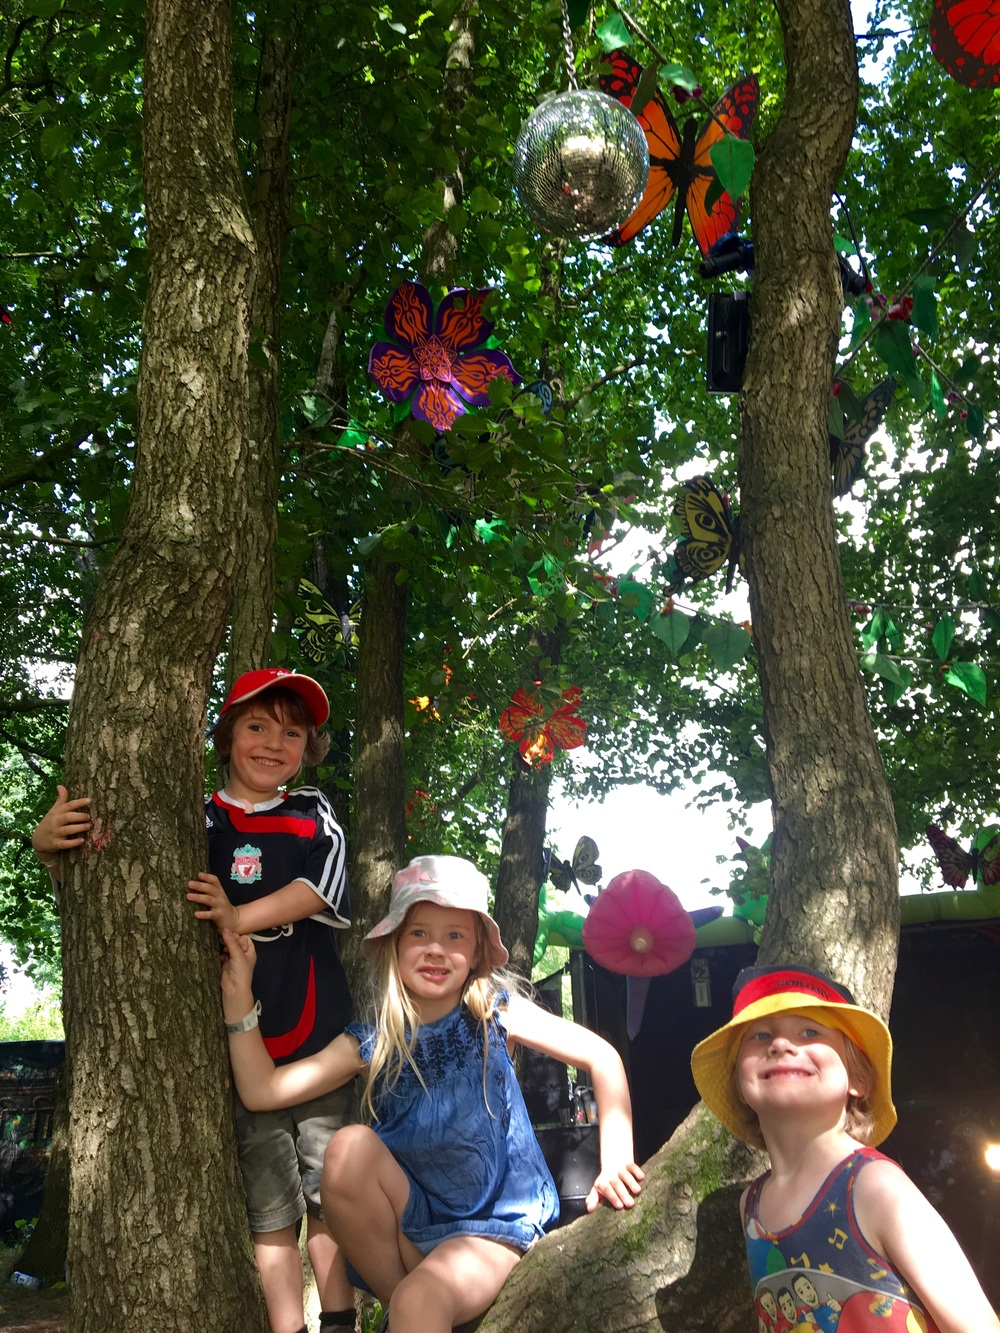 The kids in the Trance woods, climbing trees amongst UV butterflies. What's not to love?